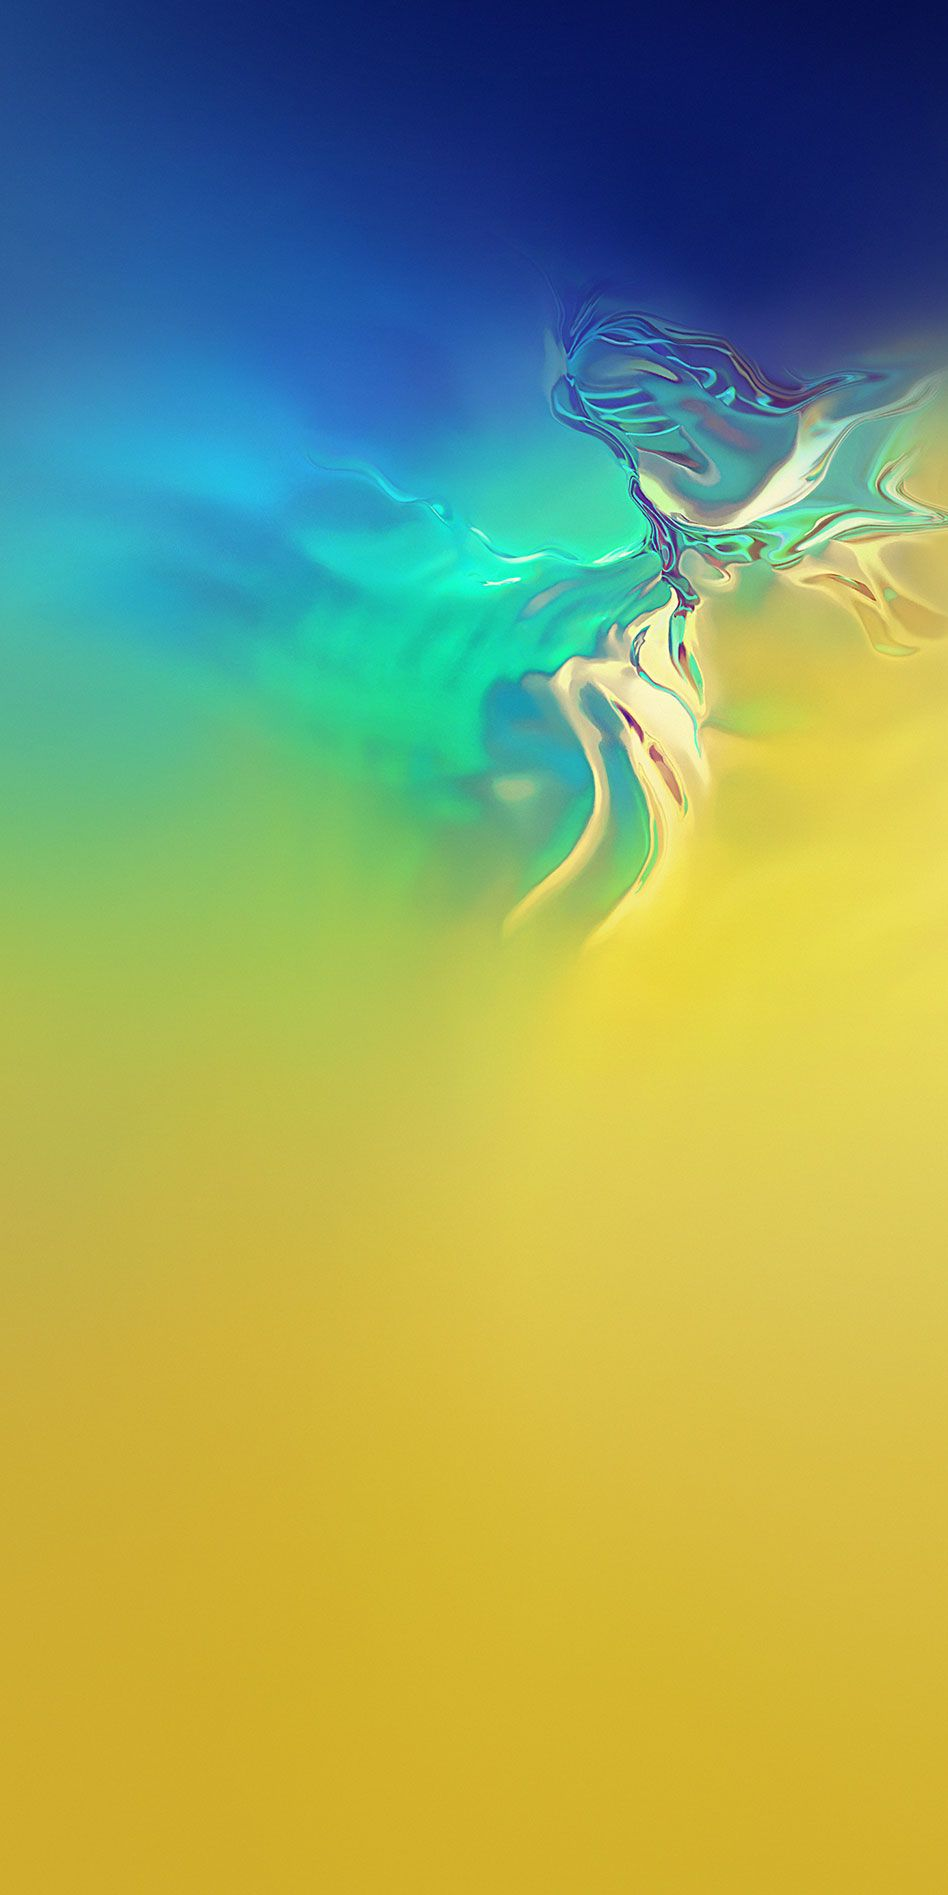 Best 12 Samsung Galaxy S10 Wallpaper Full Hd Download Abstract Iphone Wallpaper Samsung Wallpaper Android Samsung Wallpaper